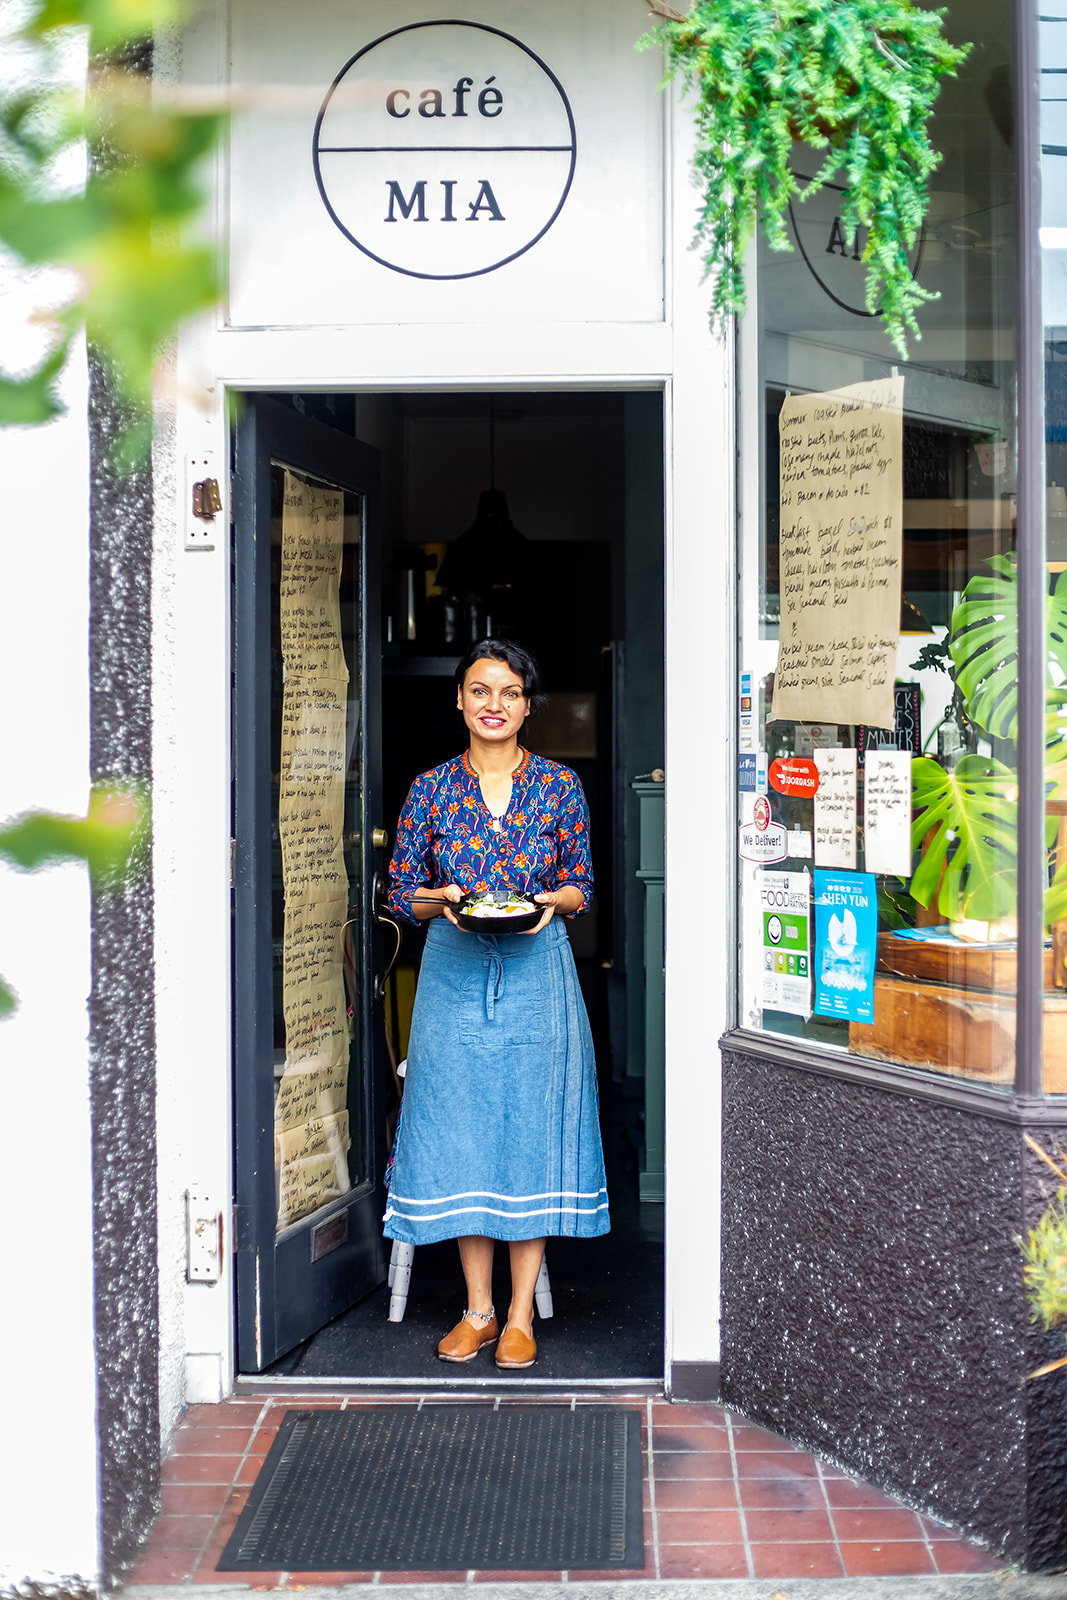 "Proud owner, Mia Loomba, is proud to be amongst a strong number of women-owned businesses in West Seattle. Cafe Mia features seasonal, locally-sourced and ethical cuisine - every dish is prepared in house by Mia herself. Cafe Mia is tucked away near the West Seattle Junction on SW Oregon Street. The perfect spot for brunch after hitting the farmers market on Sunday! Find them on Instagram{&nbsp;}<a  href=""https://www.instagram.com/cafe.mia/?hl=en"" target=""_blank"" title=""https://www.instagram.com/cafe.mia/?hl=en"">@cafe.mia</a>. (Image:{&nbsp;}Samantha Witt / Seattle Refined)"